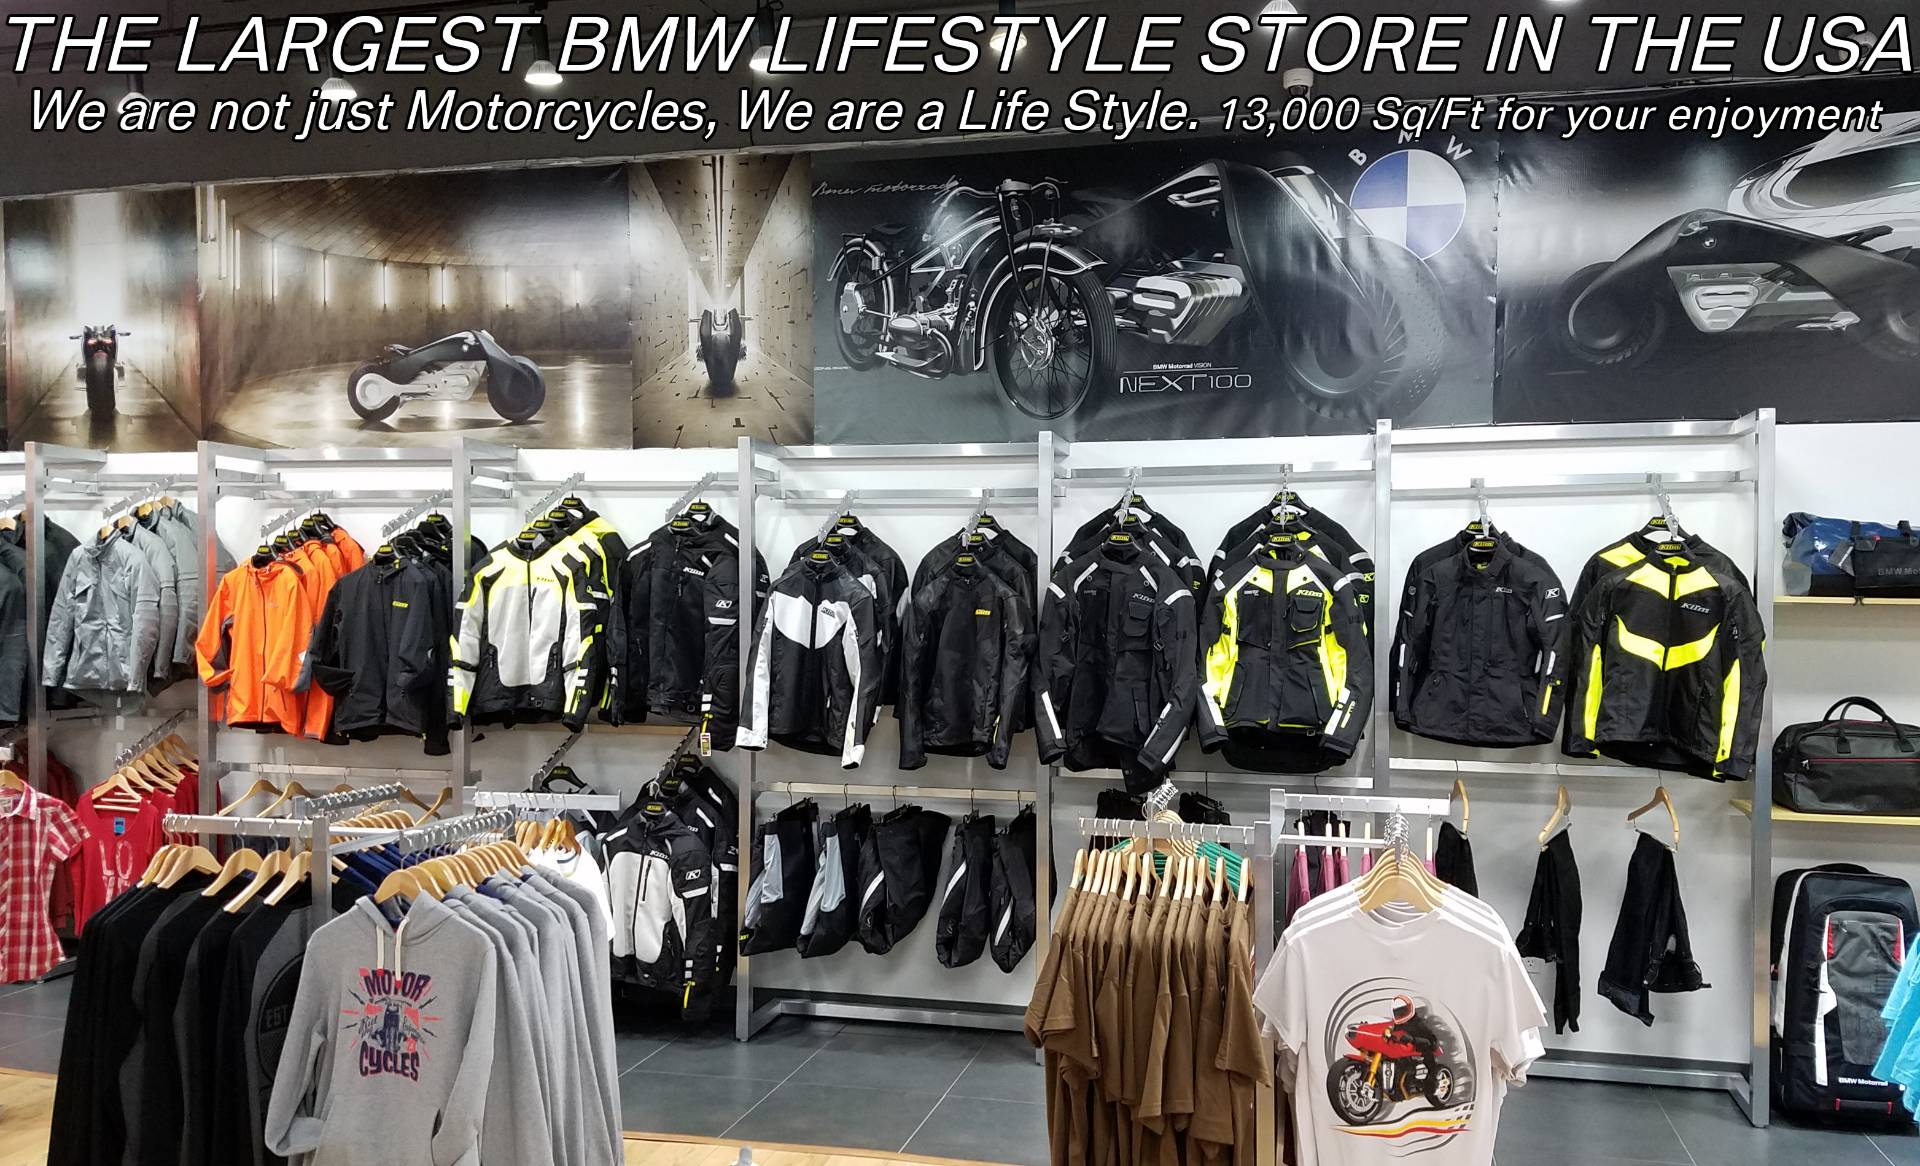 New 2019 BMW C 400 X for sale, BMW C 400X for sale, BMW Scooter, new BMW Scooter, C400X, BMW Motorcycles of Miami, Motorcycles of Miami, Motorcycles Miami - Photo 35